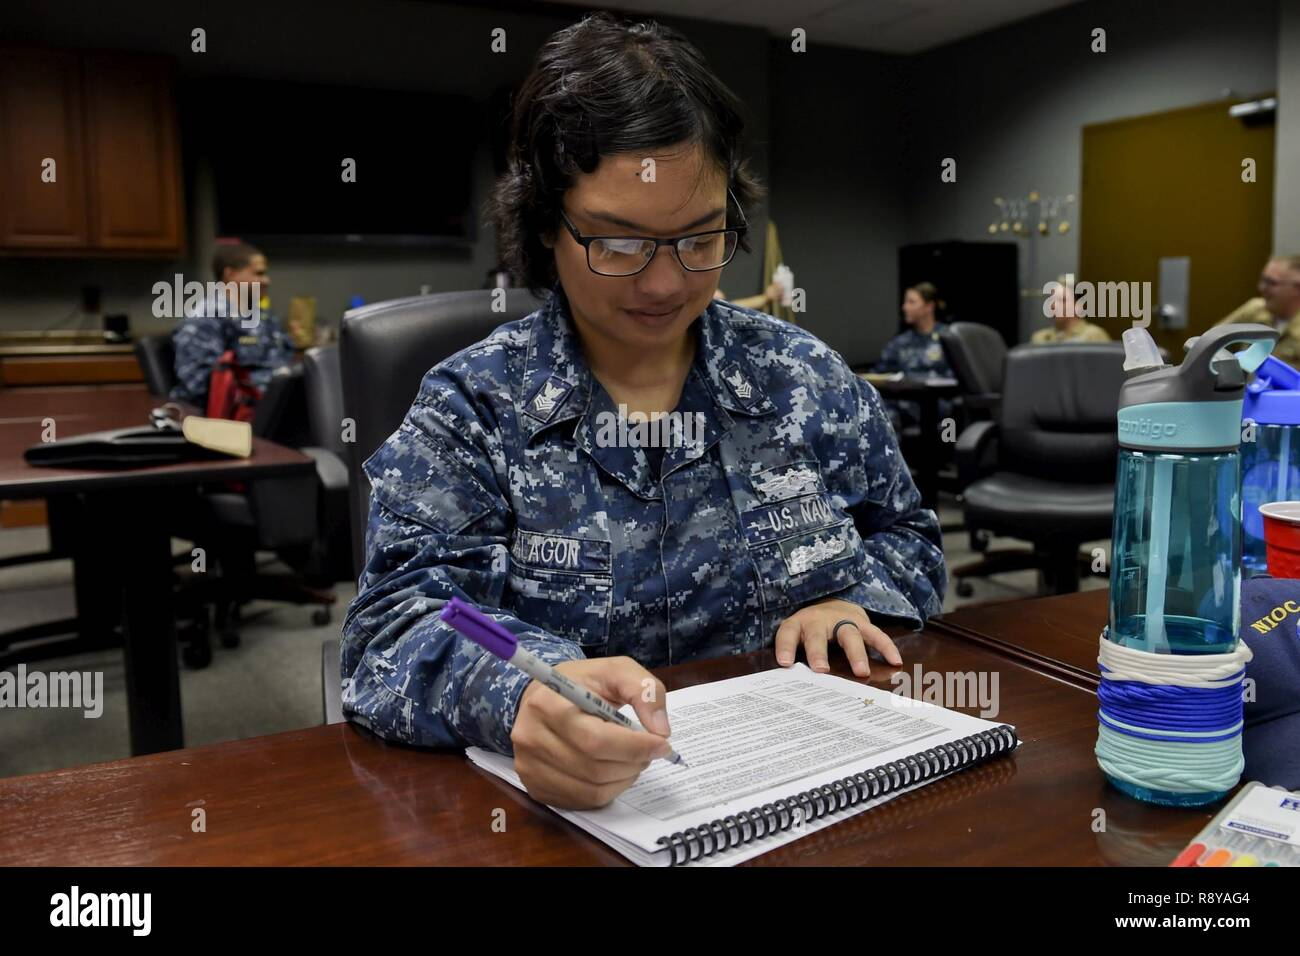 PENSACOLA, Fla. (March 9, 2017) Cryptologic Technician (Interpretive)(CTI) 1st Class Amorita Malogon takes notes during a biennial occupational standards review for the CTI rating. The occupational standards review process breaks down core tasks, job descriptions, and skills and abilities for each rating. It serves as the basis for all Navy professional development and training tools, such as rate training manuals, personal qualification standards, course curricula and advancement exams. - Stock Image